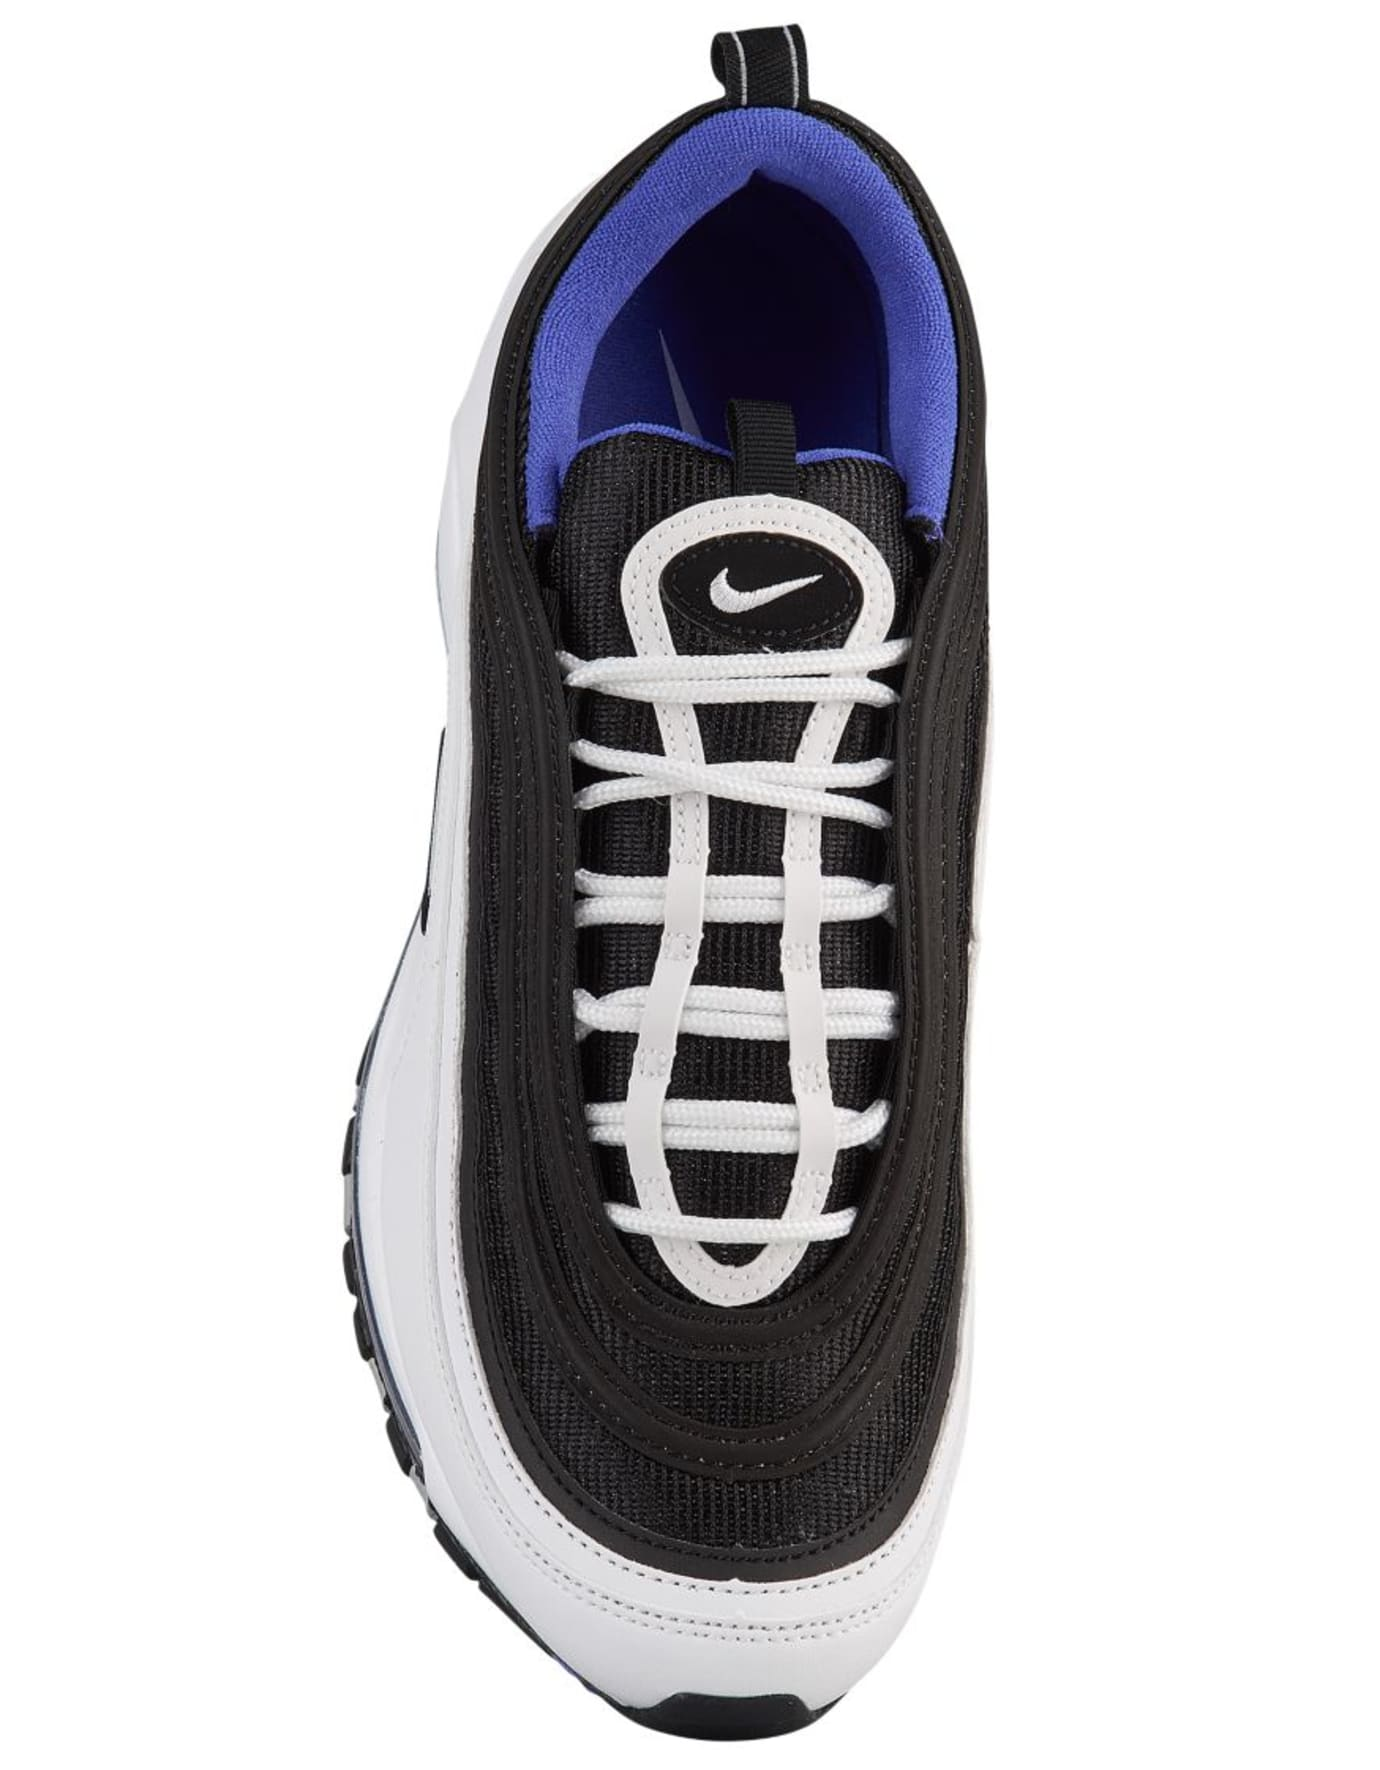 Nike Air Max 97 'White/Black/Persian Violet' 921826-103 (Top)